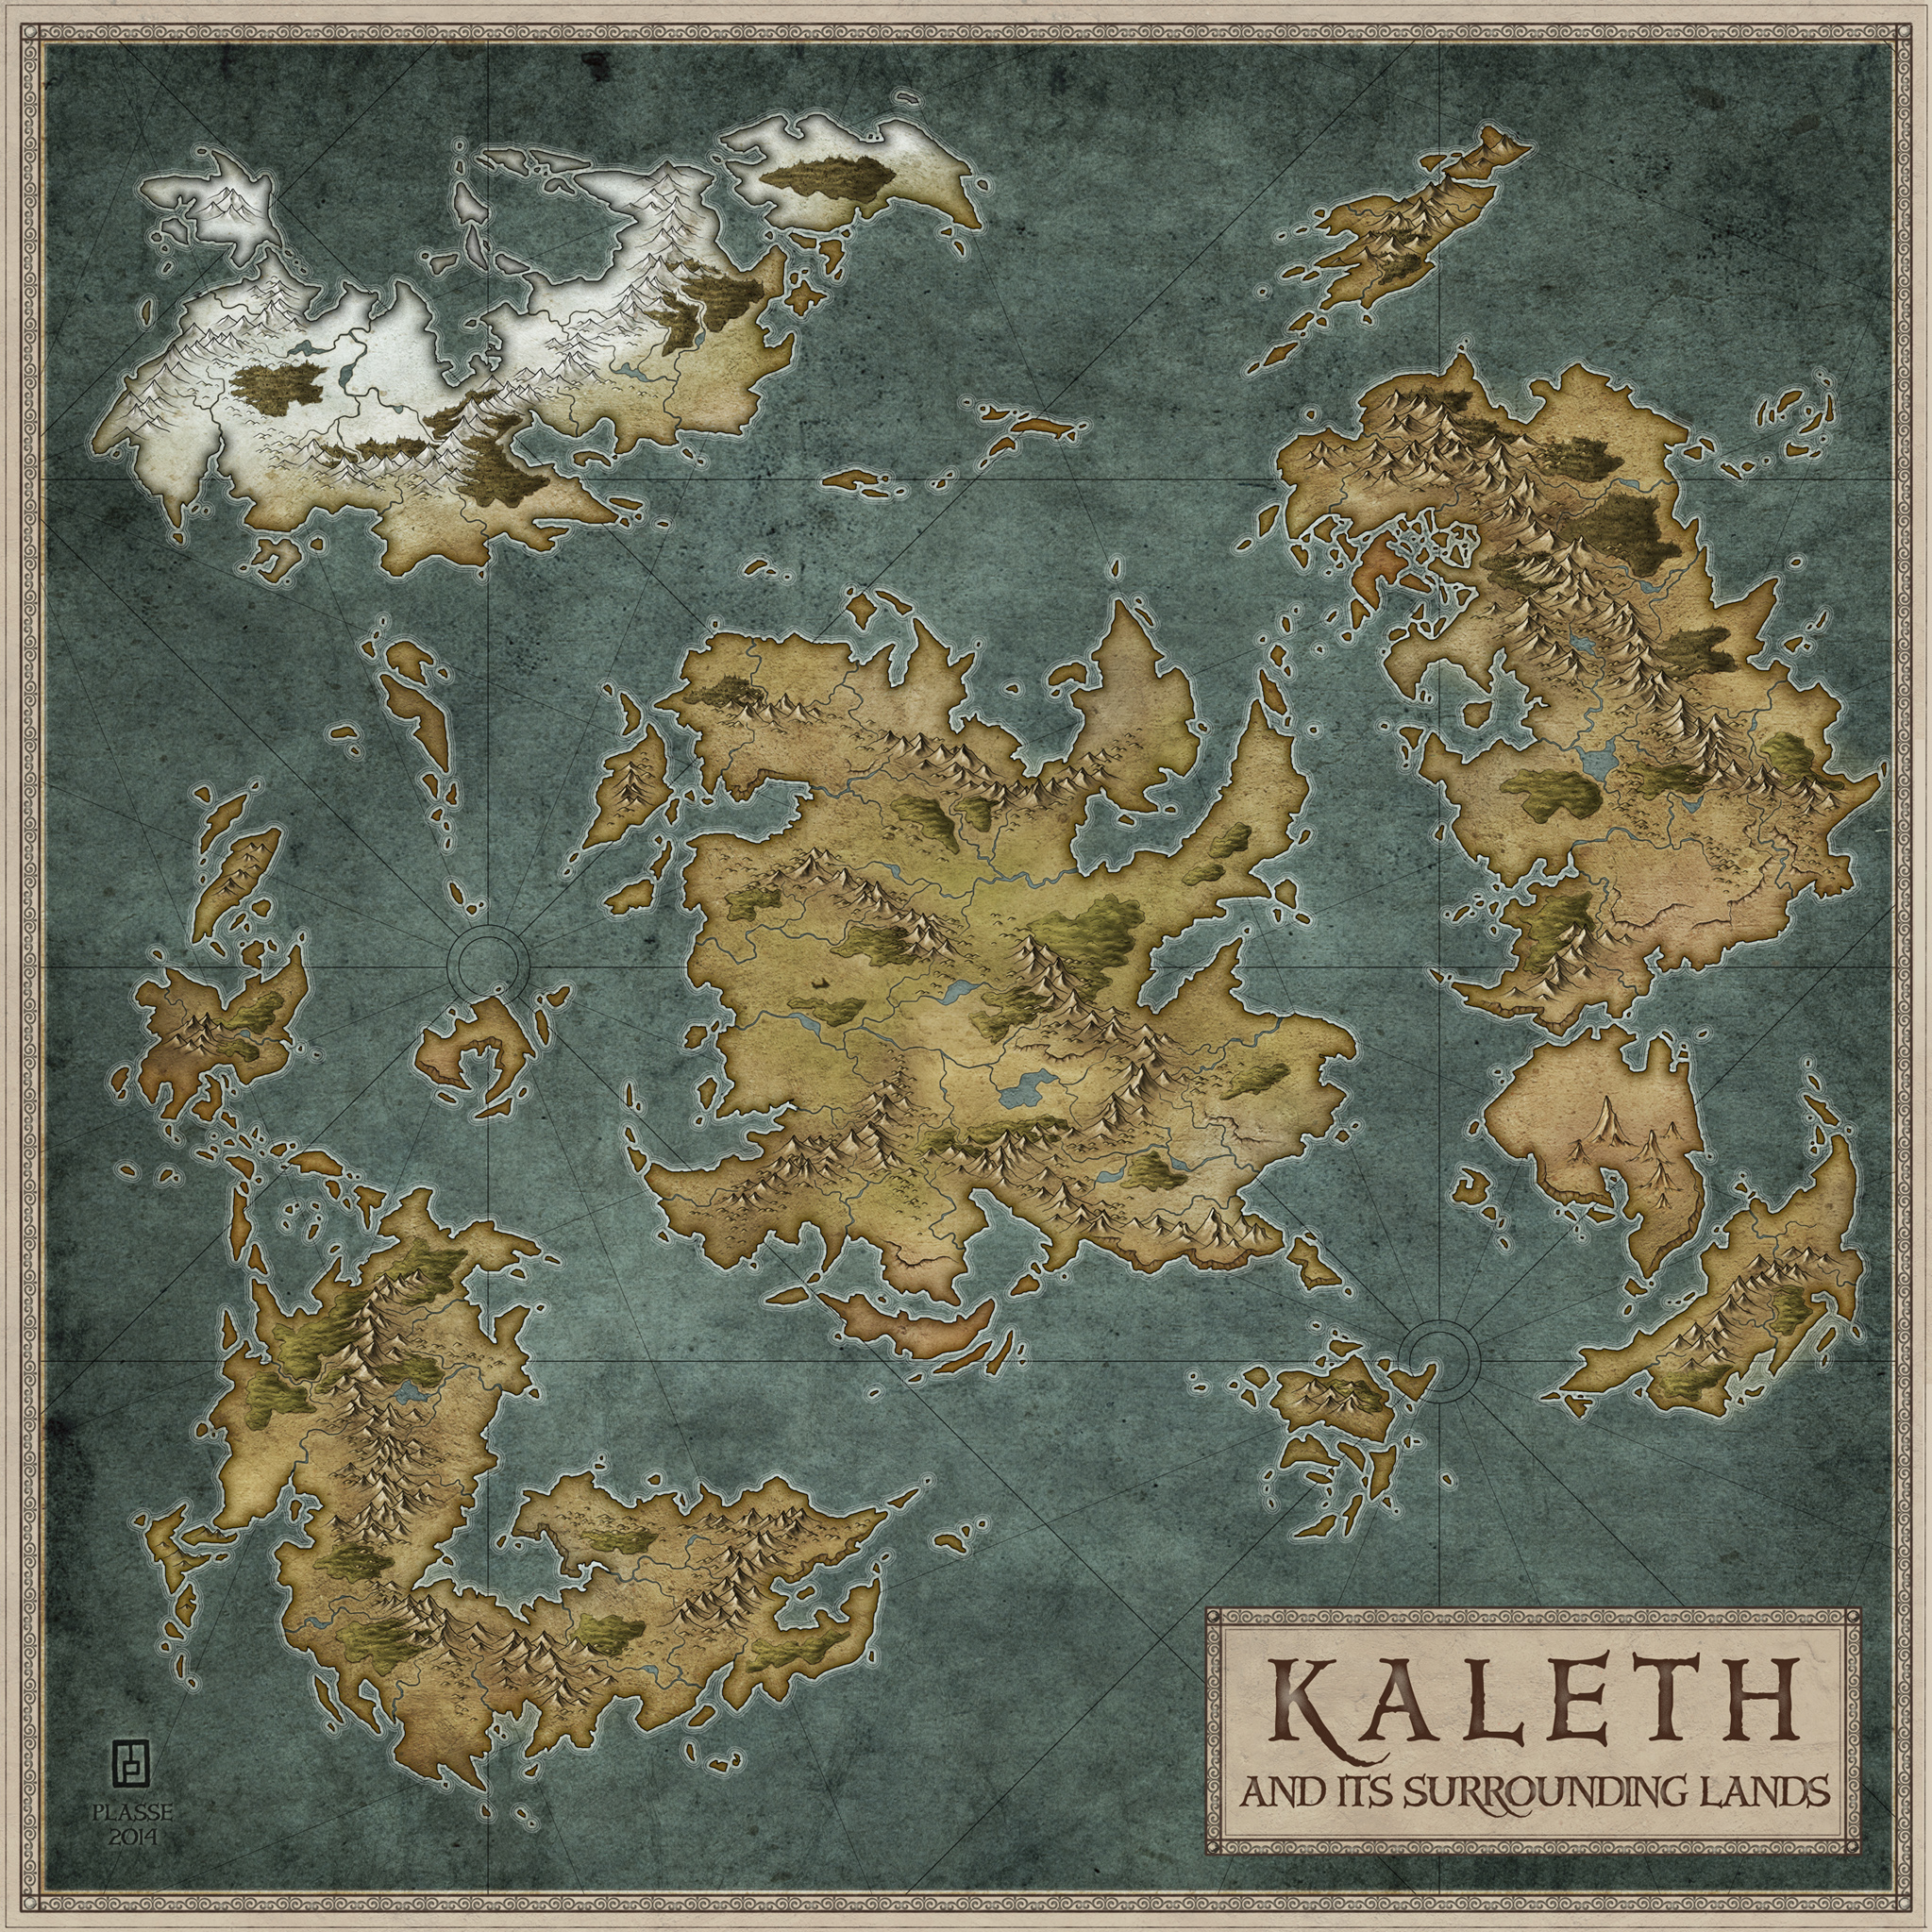 """Kaleth - Aegin : Forum based game commission � 2014 - All rights reserved  """" I must say and confess that Max has delivered in all regards we hoped he could.  The map was delivered within the preferred amount of time without any unexpected delays, hick-ups or stalling. The dealing with Max, as a person are nothing but exemplar and utmost friendly. He is professional, none judgmental and cooperative in the broadest sense of the word. Last but not least, he is easy to contact and proactive in his communications. I would definitely offer return work to Max as all the above mentioned qualities and stipulations offer a pleasant, constructive and quality venture that results in a high grade product. Max is a professional and I would highly recommend him as an artist"""". T.Car�"""